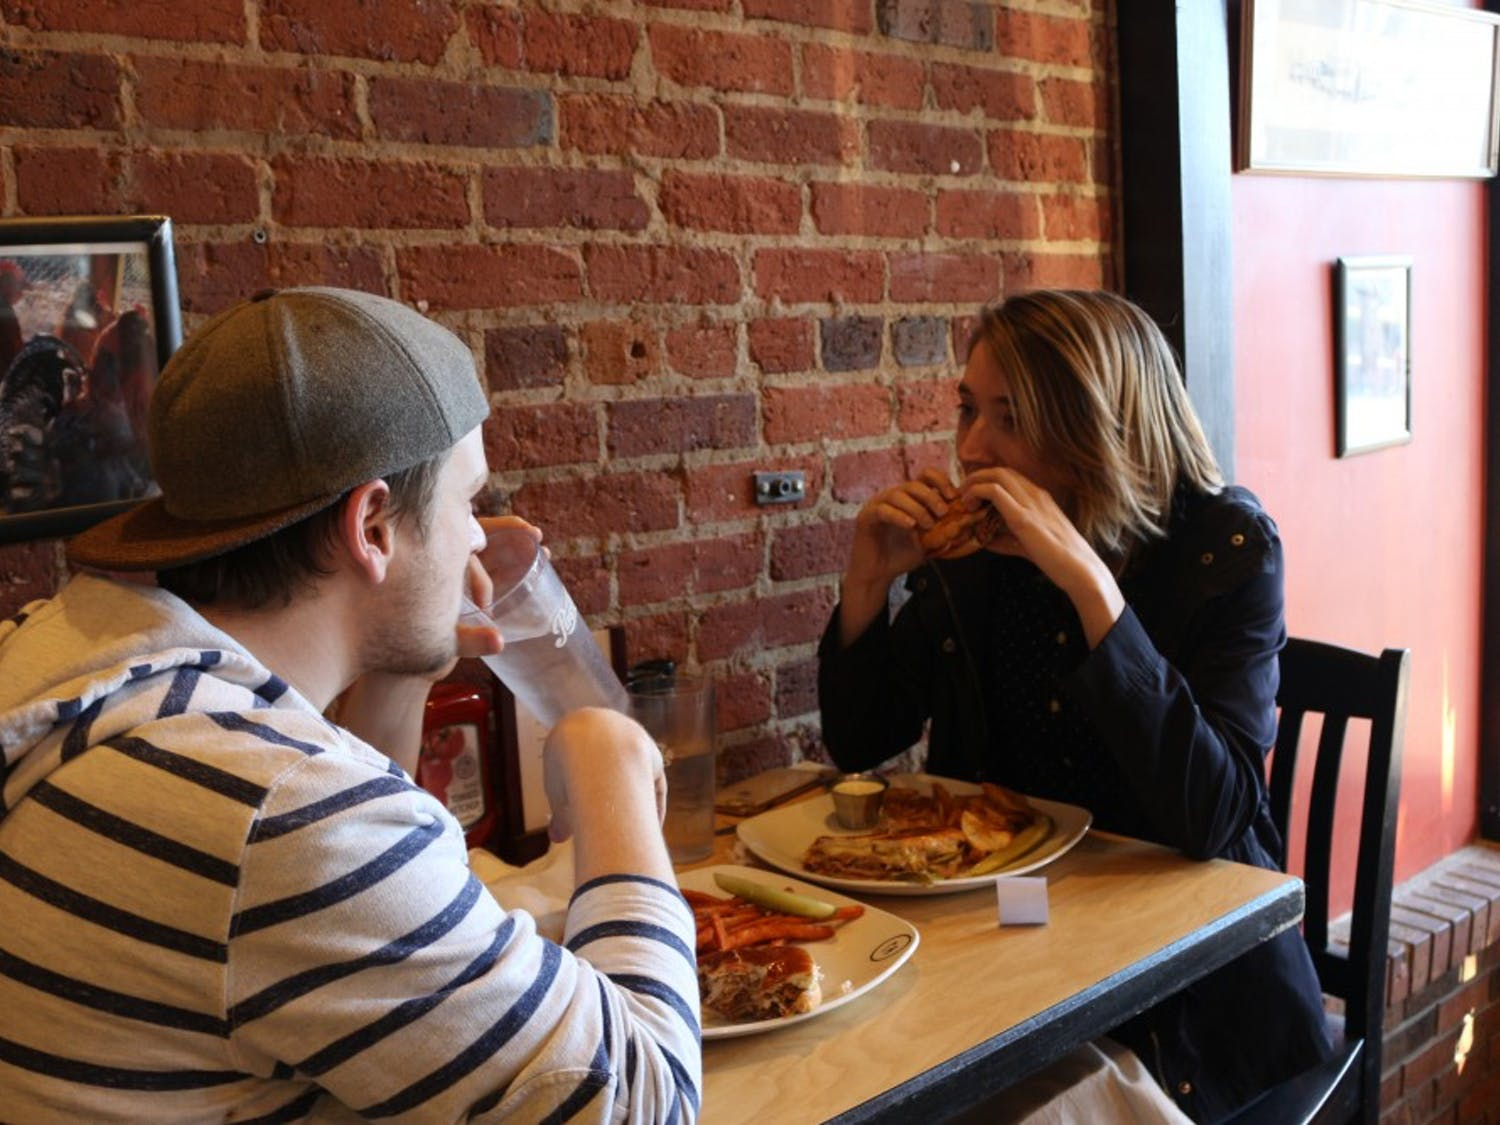 UNC junior Taylor Halterman and Chapel Hill resident Jake Lewis enjoy a meal at Roots, located on Franklin St., on Friday, Jan. 25, 2019. The restaurant is closing on Feb. 17, 2019 and plans to reopen in Durham. One of the owners, Gabriel Ordonez, wants to promote the new location by giving coupons to customers that visit the Franklin location before it closes.